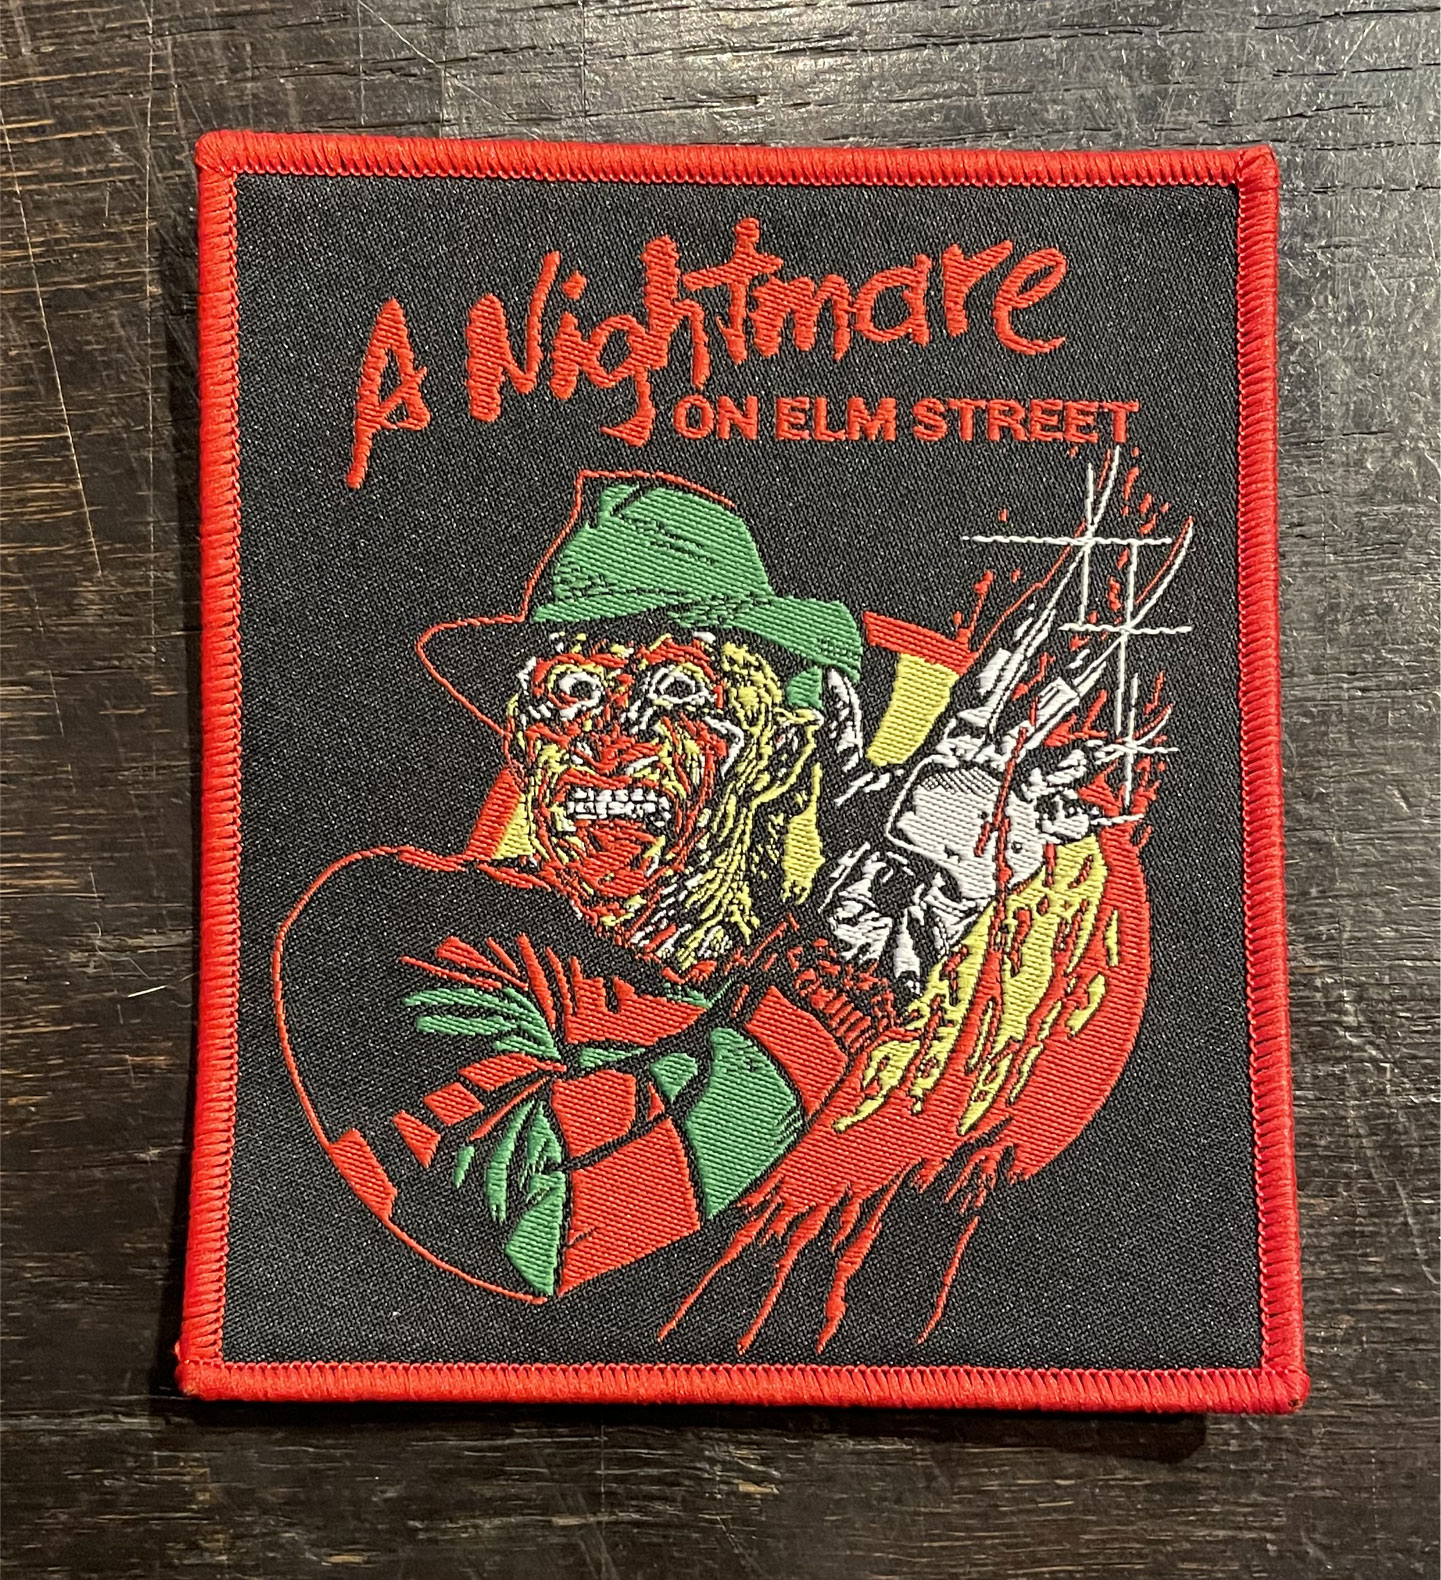 A Nightmare on Elm Street 刺繍ワッペン Freddy